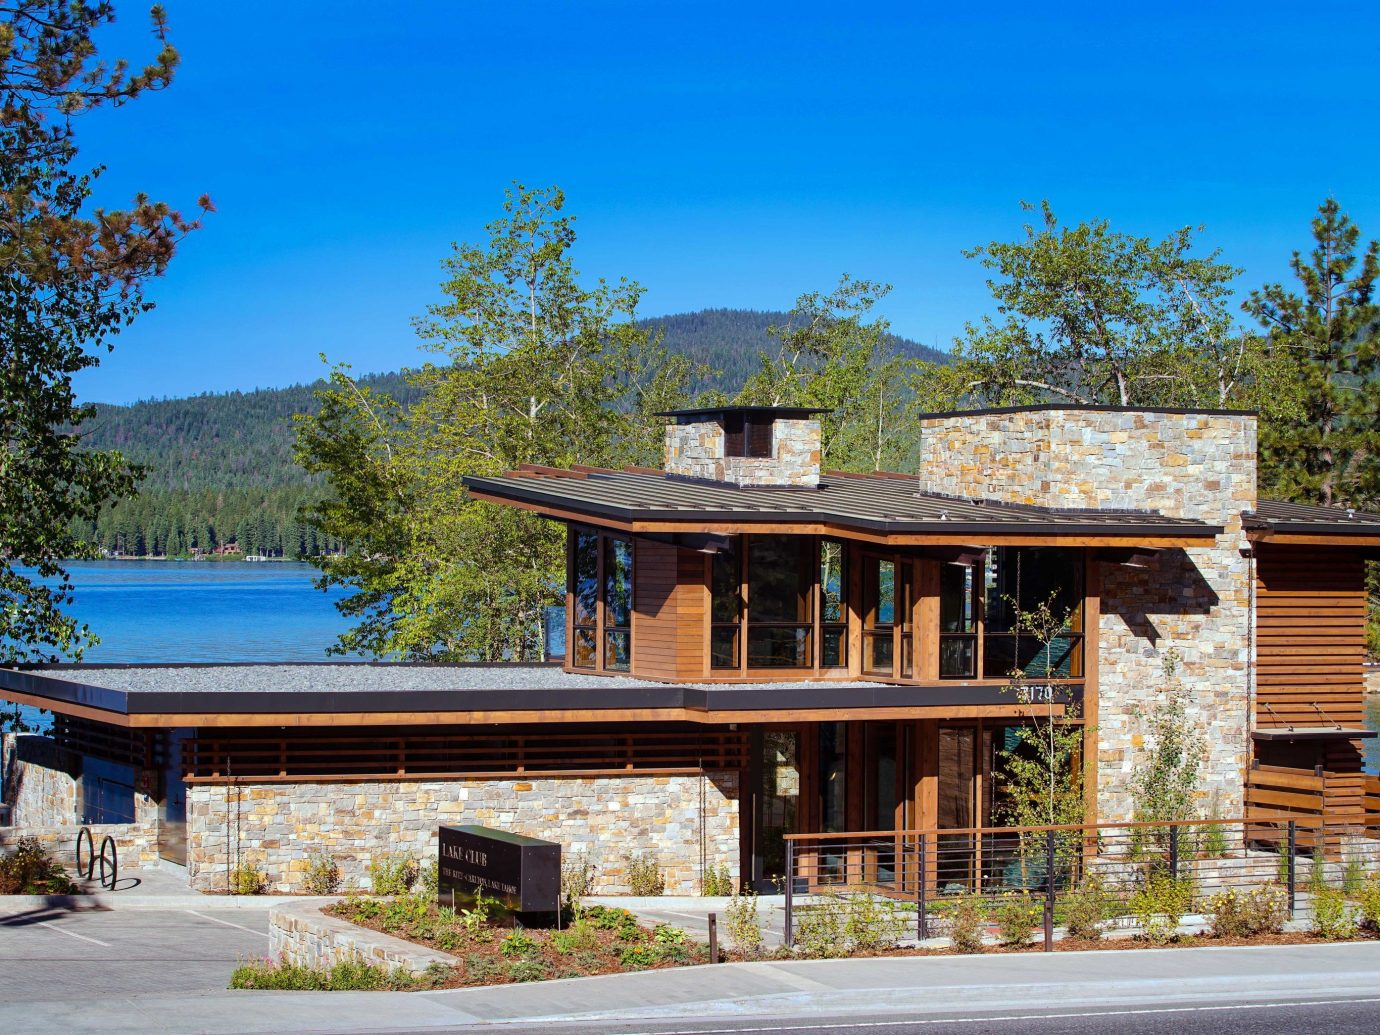 Lake Club house home property Architecture real estate cottage residential area tree estate facade plant landscape roof elevation Villa siding outdoor structure sky log cabin